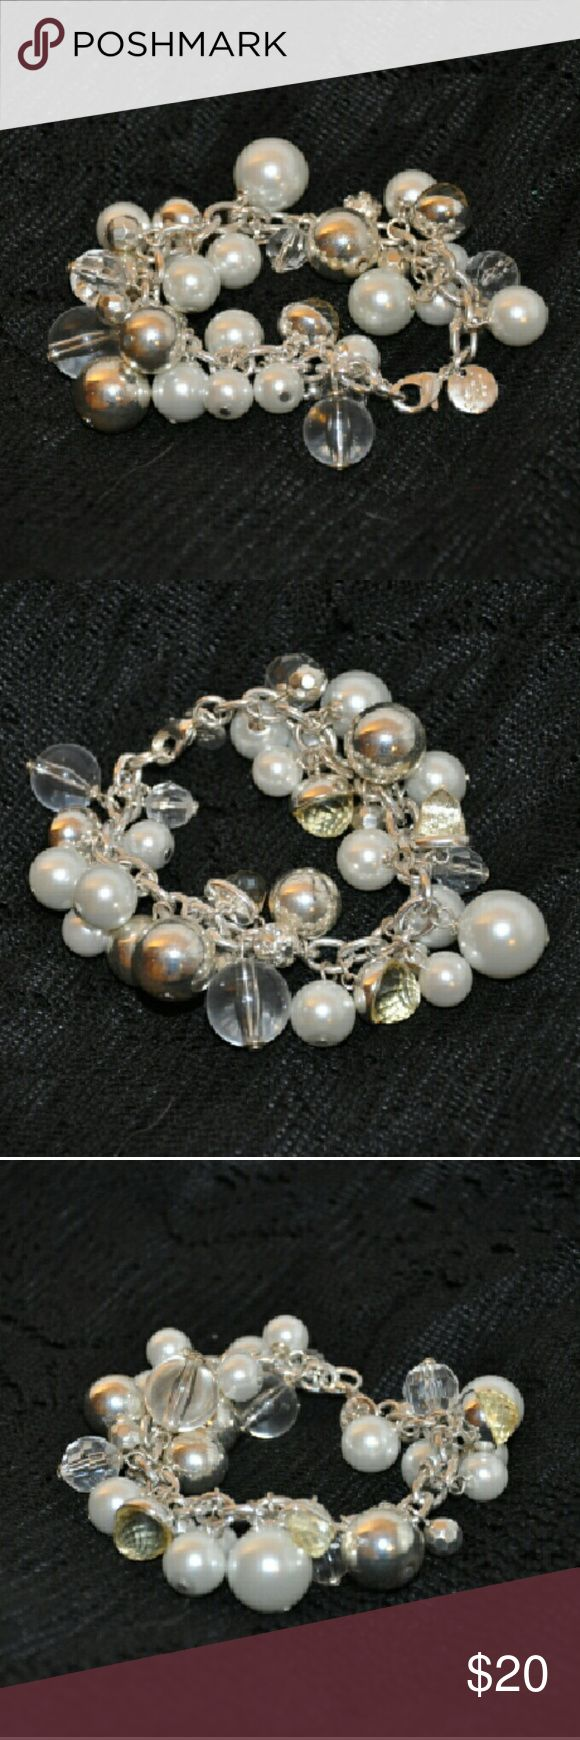 "Grace Adele Silver Pearl Cluster Bracelet This beautiful bracelet has a variety of beads and pearls all around. I tried to show them all in the pics! 9"" in full length with about 1.5"" in adjustable chain. Very nice!! Please let me know if you have any questions and I'll do my best answer! Thanks!! :D Grace Adele Jewelry Bracelets"